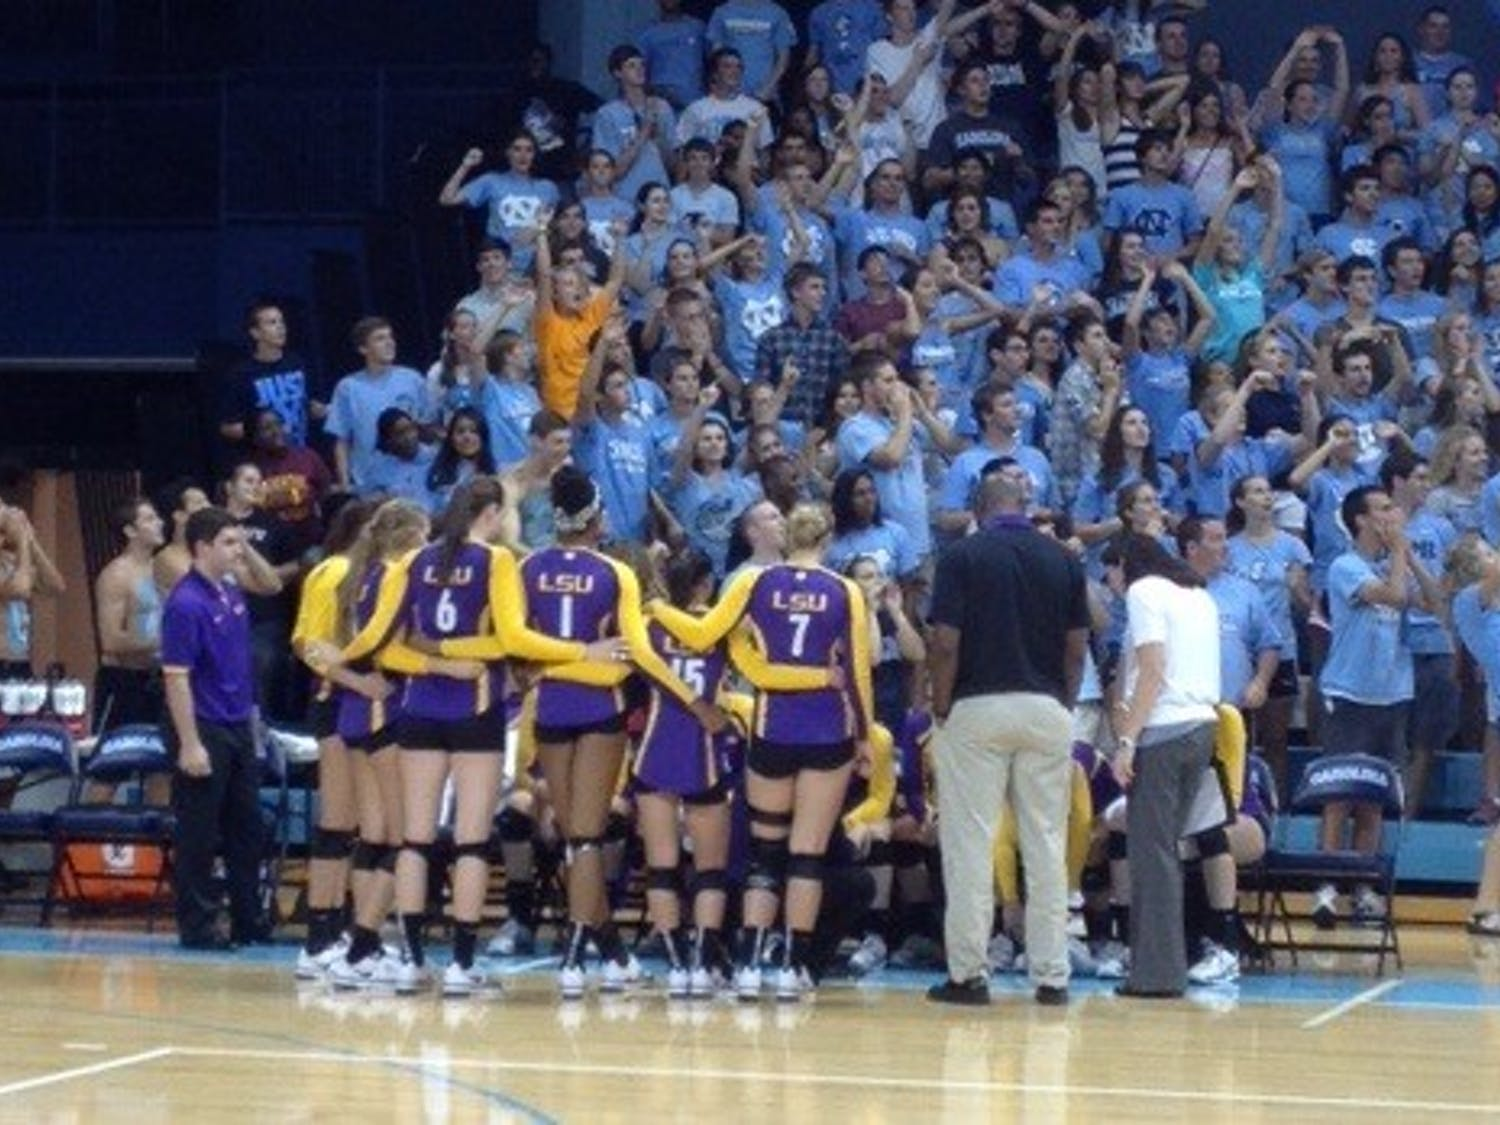 LSU players huddle around the bench during Friday's volleyball game at Carmichael Arena.